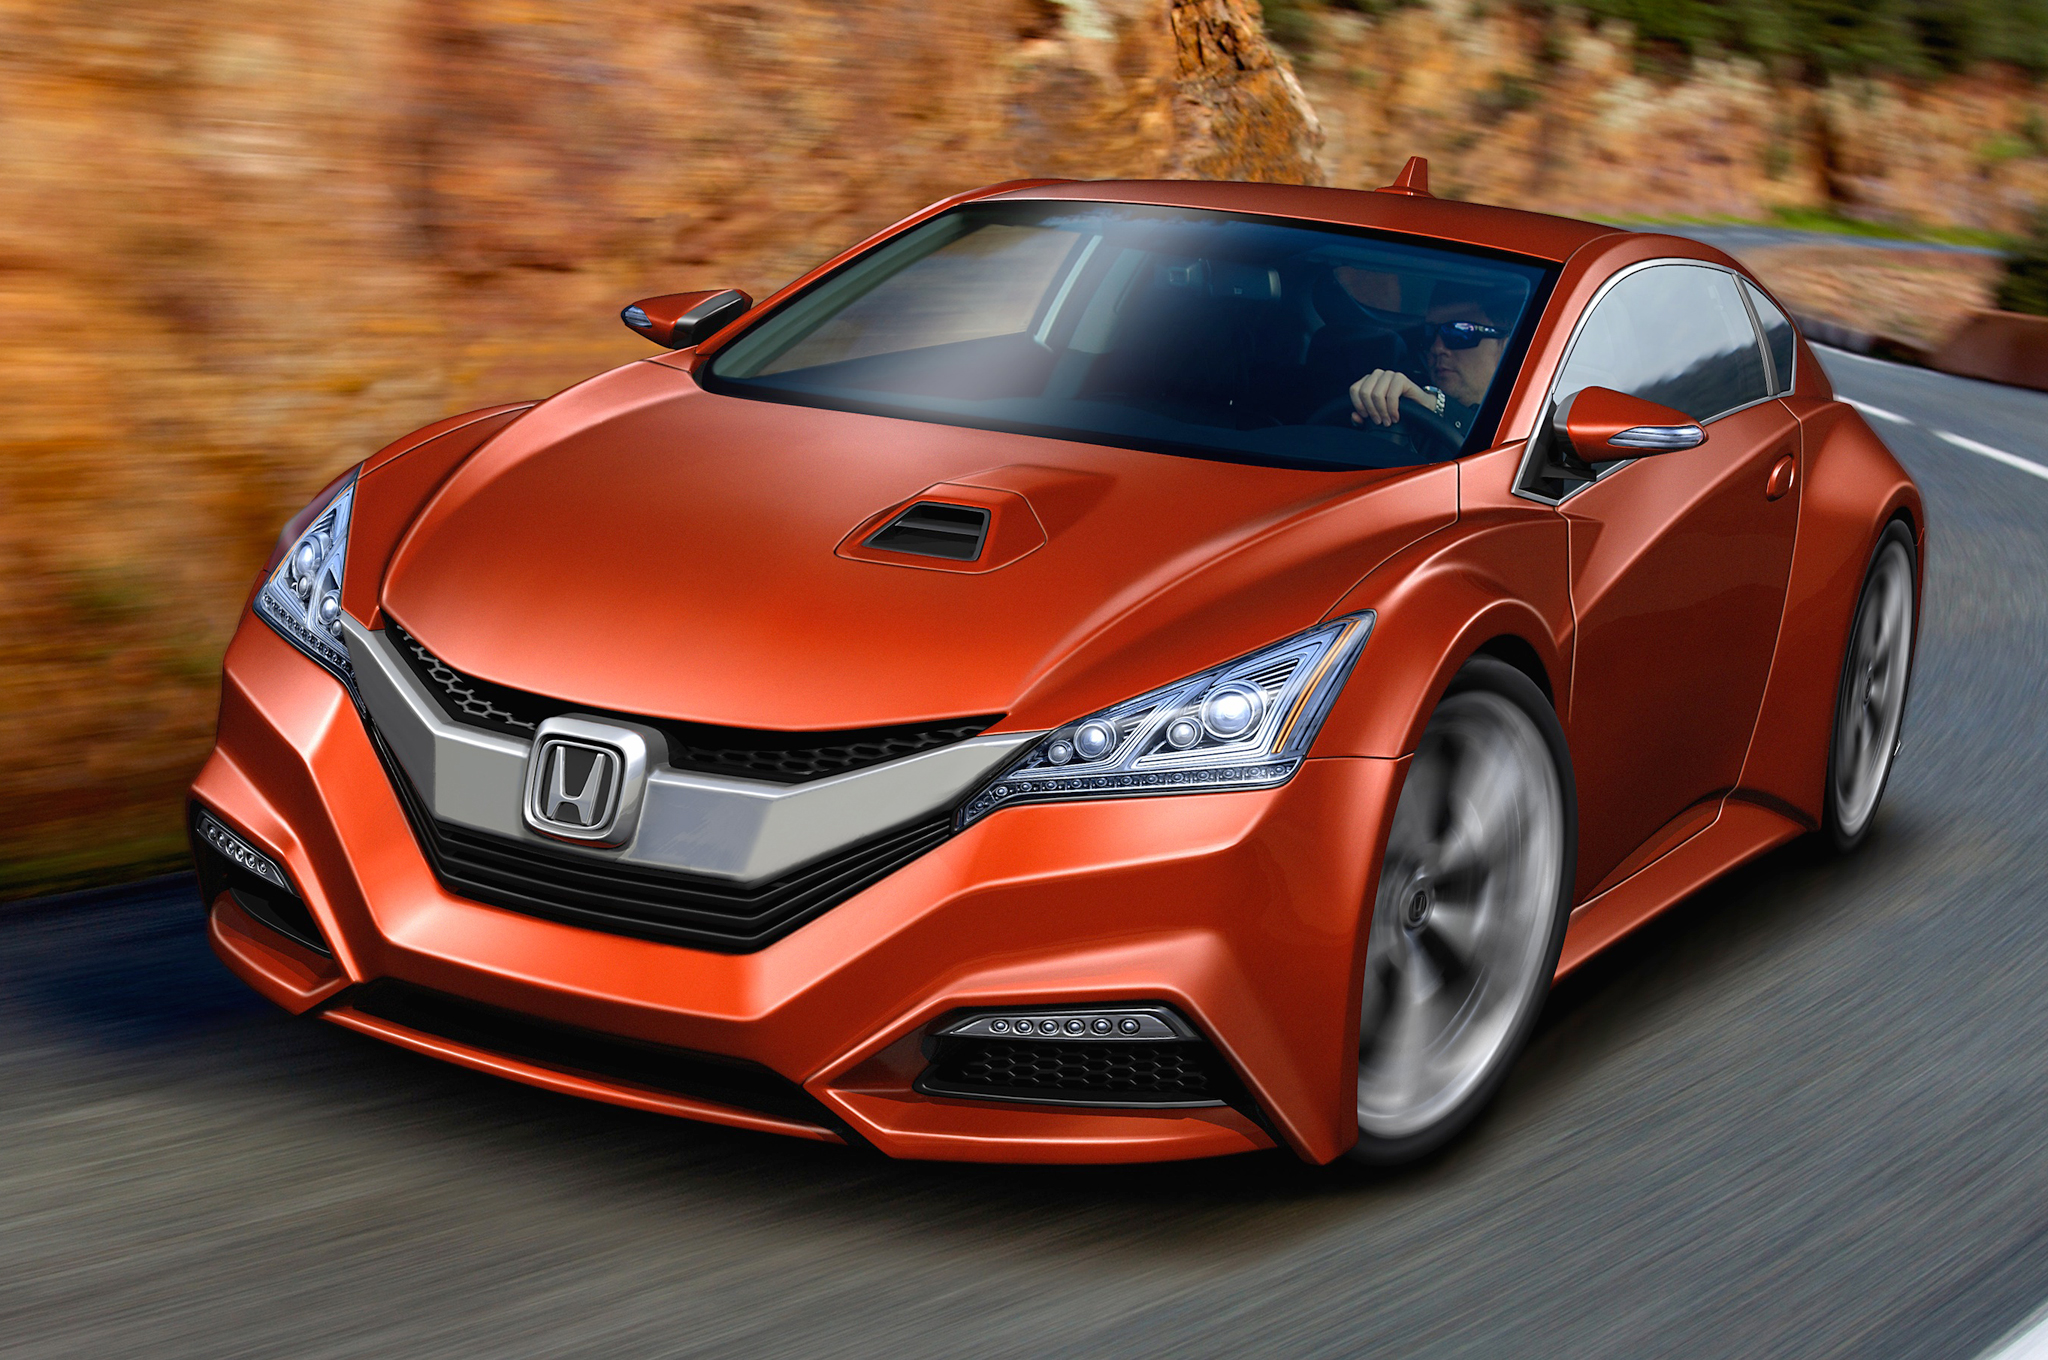 Honda Seems Serious About New CR-Z to Fight BRZ, FR-S